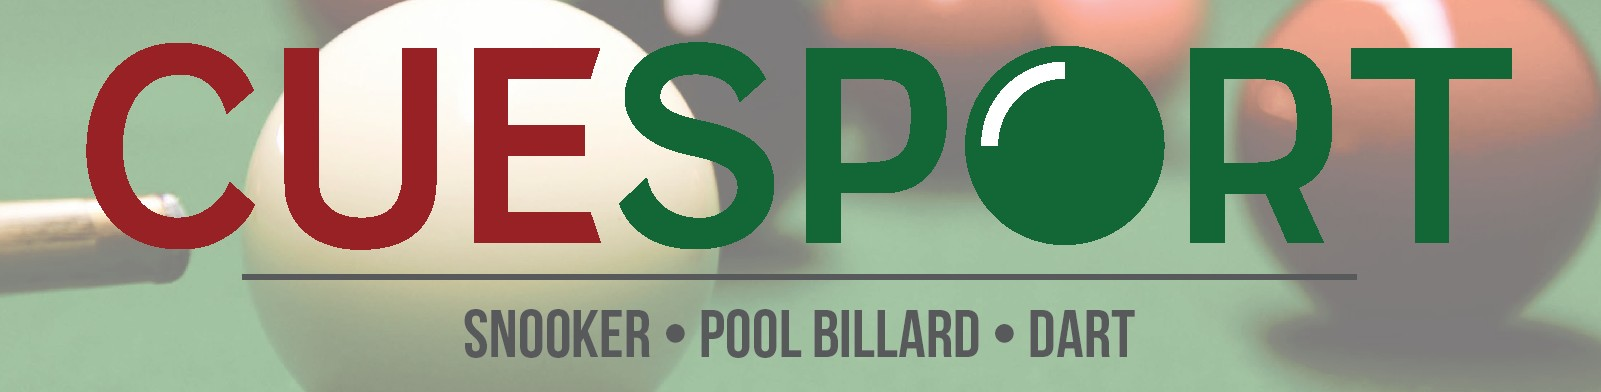 Berliner Billard Halle Snooker Poolbillard